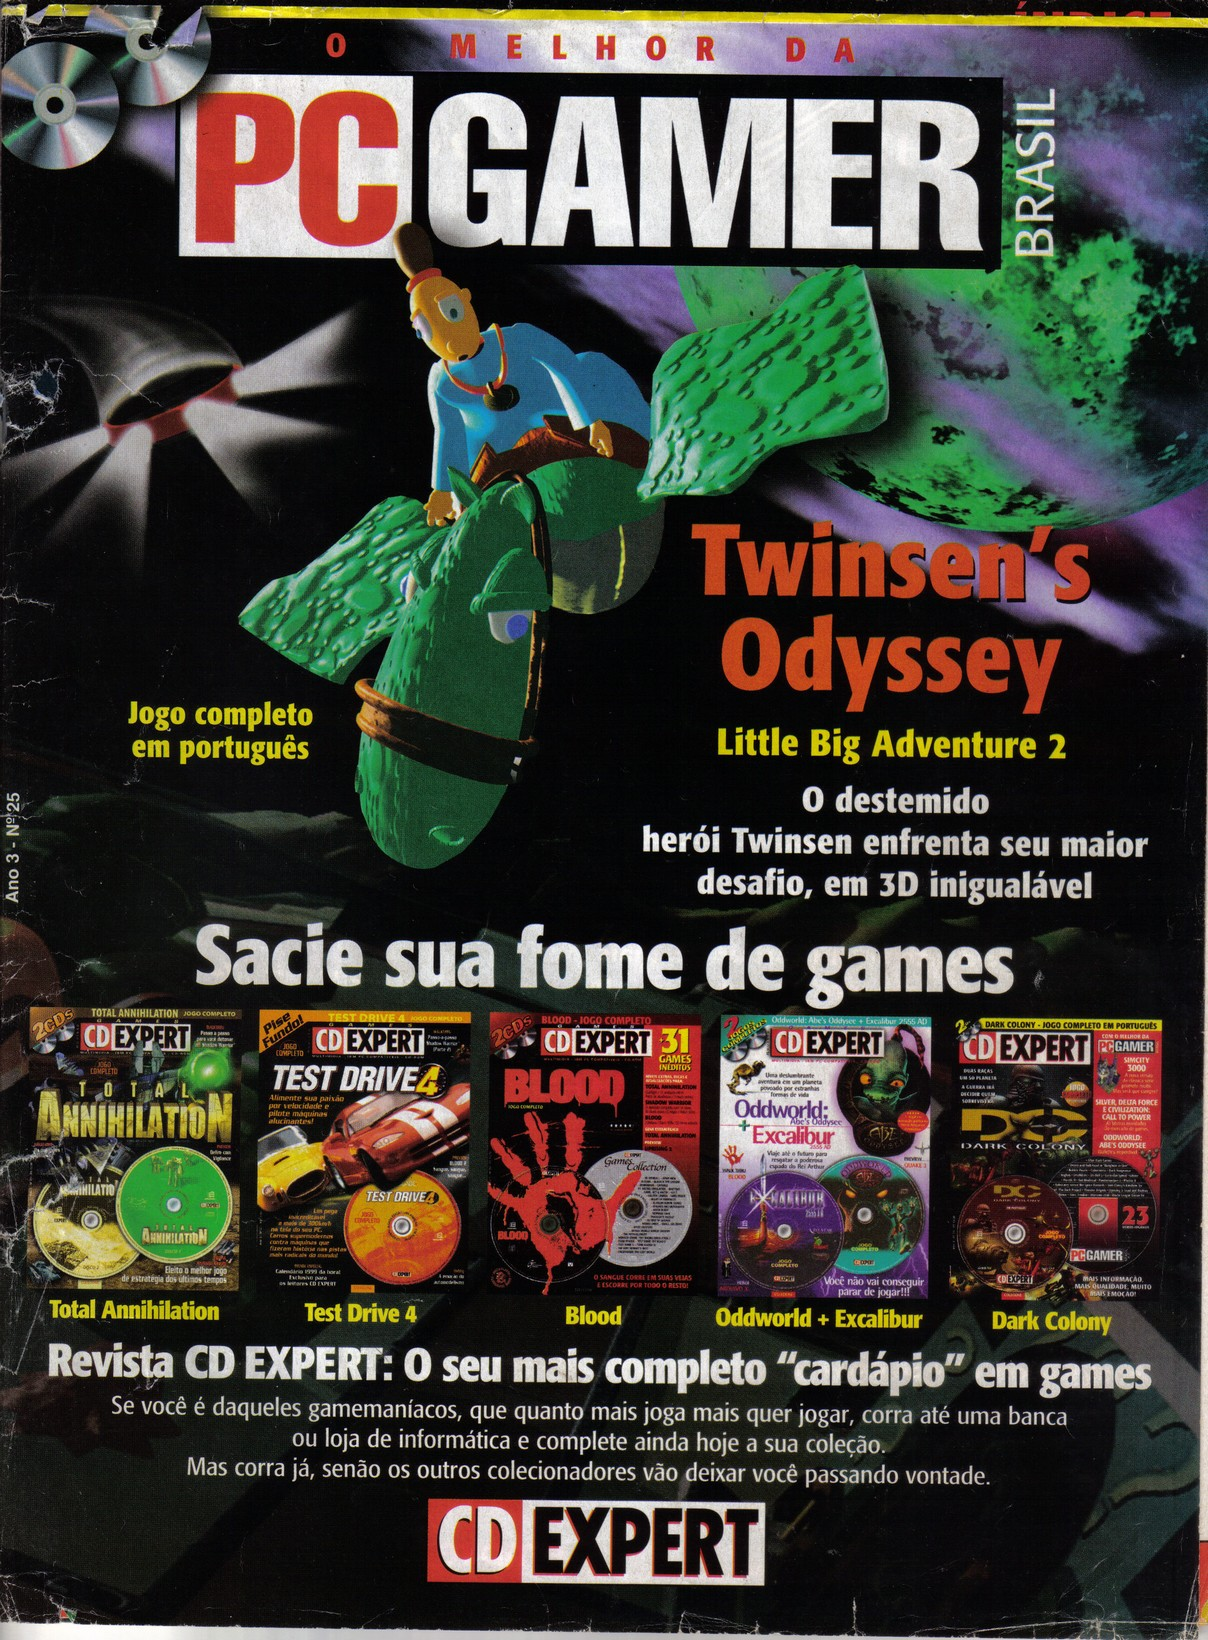 CD Gamer issue 25 - magazine front